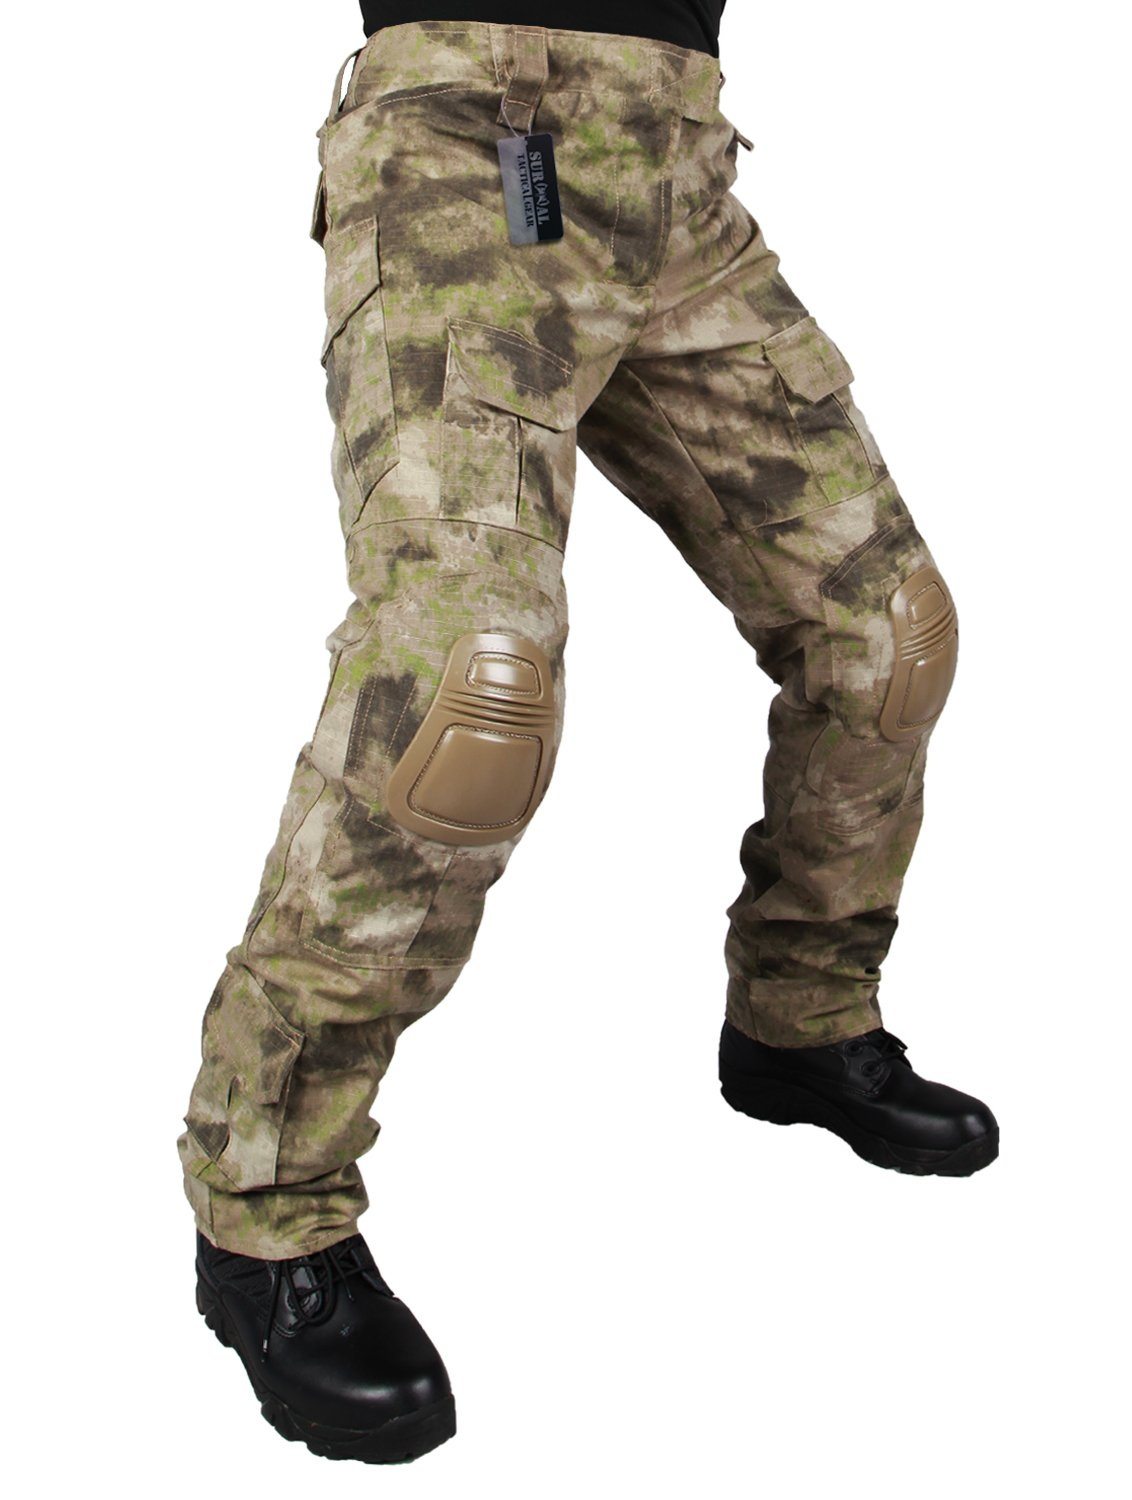 ZAPT Tactical Pants with Knee Pads Airsoft Camping Hiking Hunting BDU Ripstop Combat Pants 13 Kinds Army Camo Uniform Military Trousers (HI, XXL40) by ZAPT